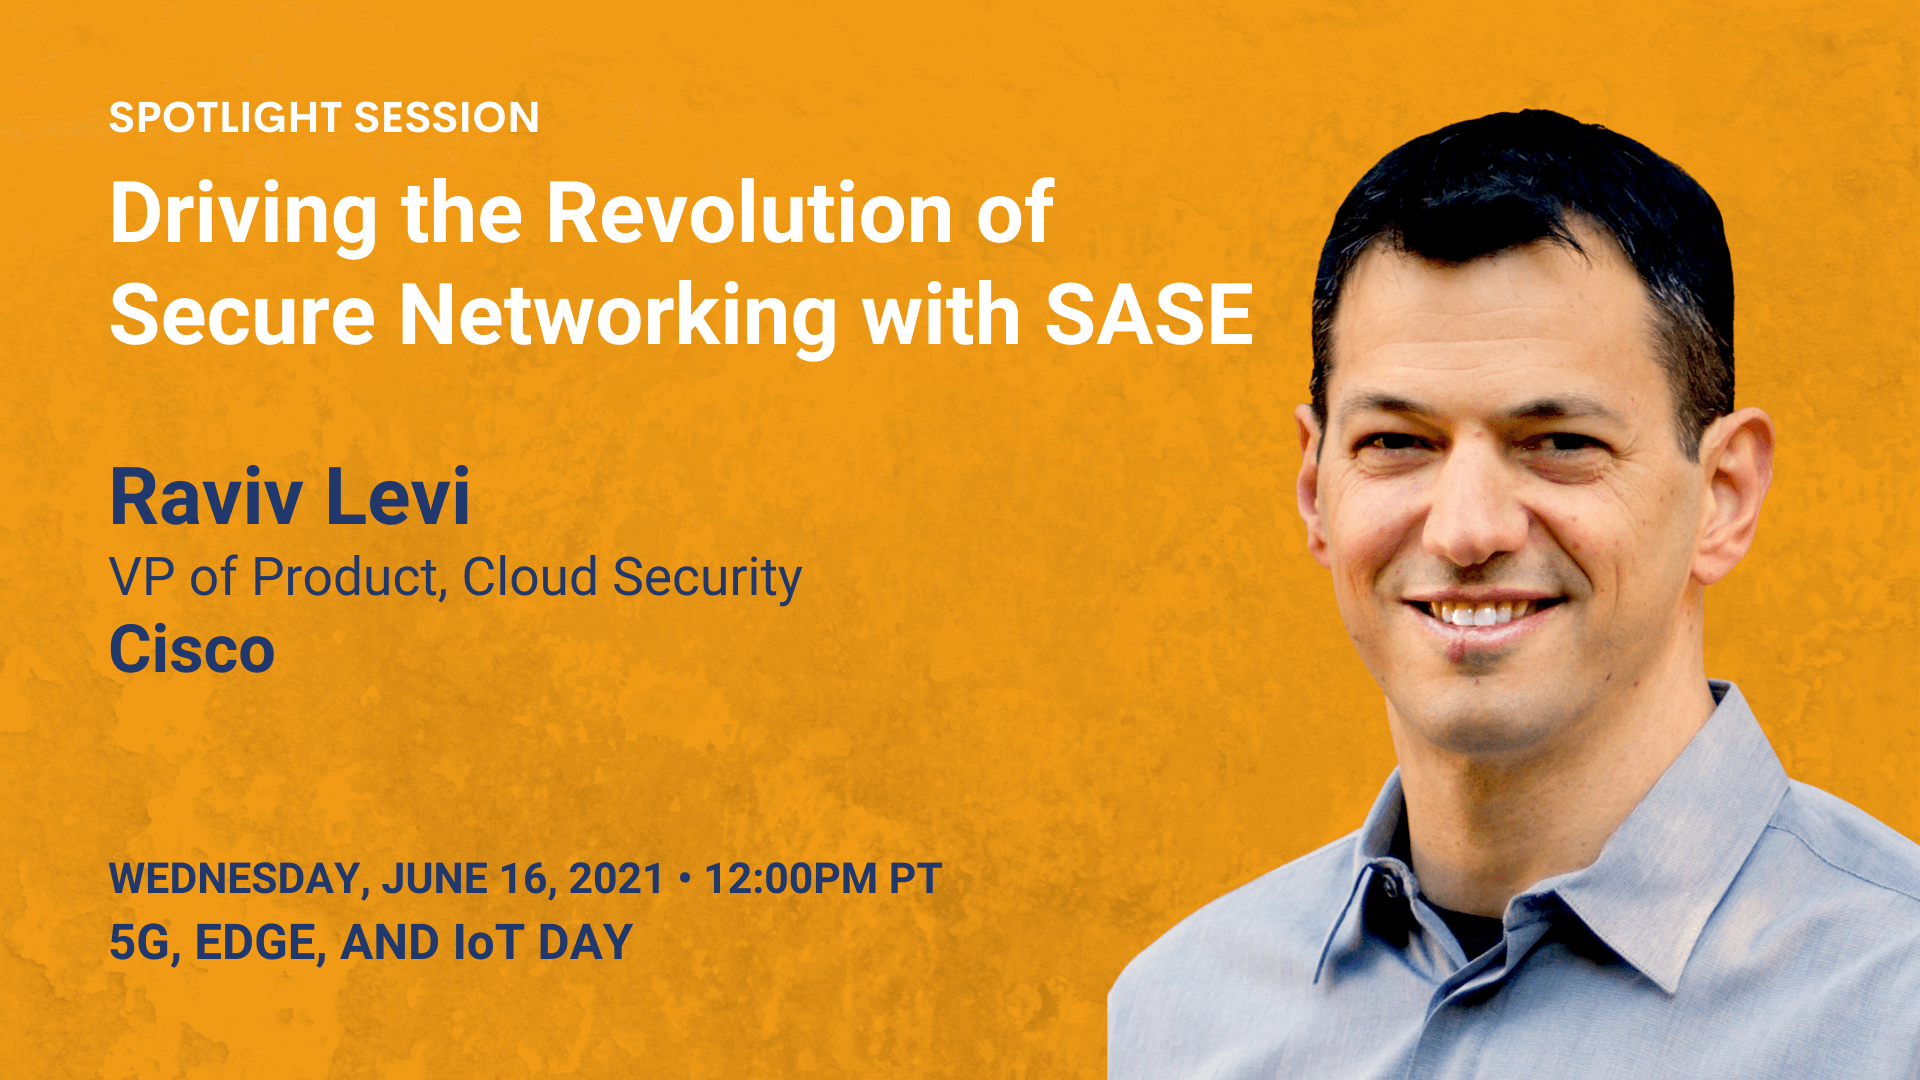 Driving the Revolution of Secure Networking with SASE (Raviv Levi)